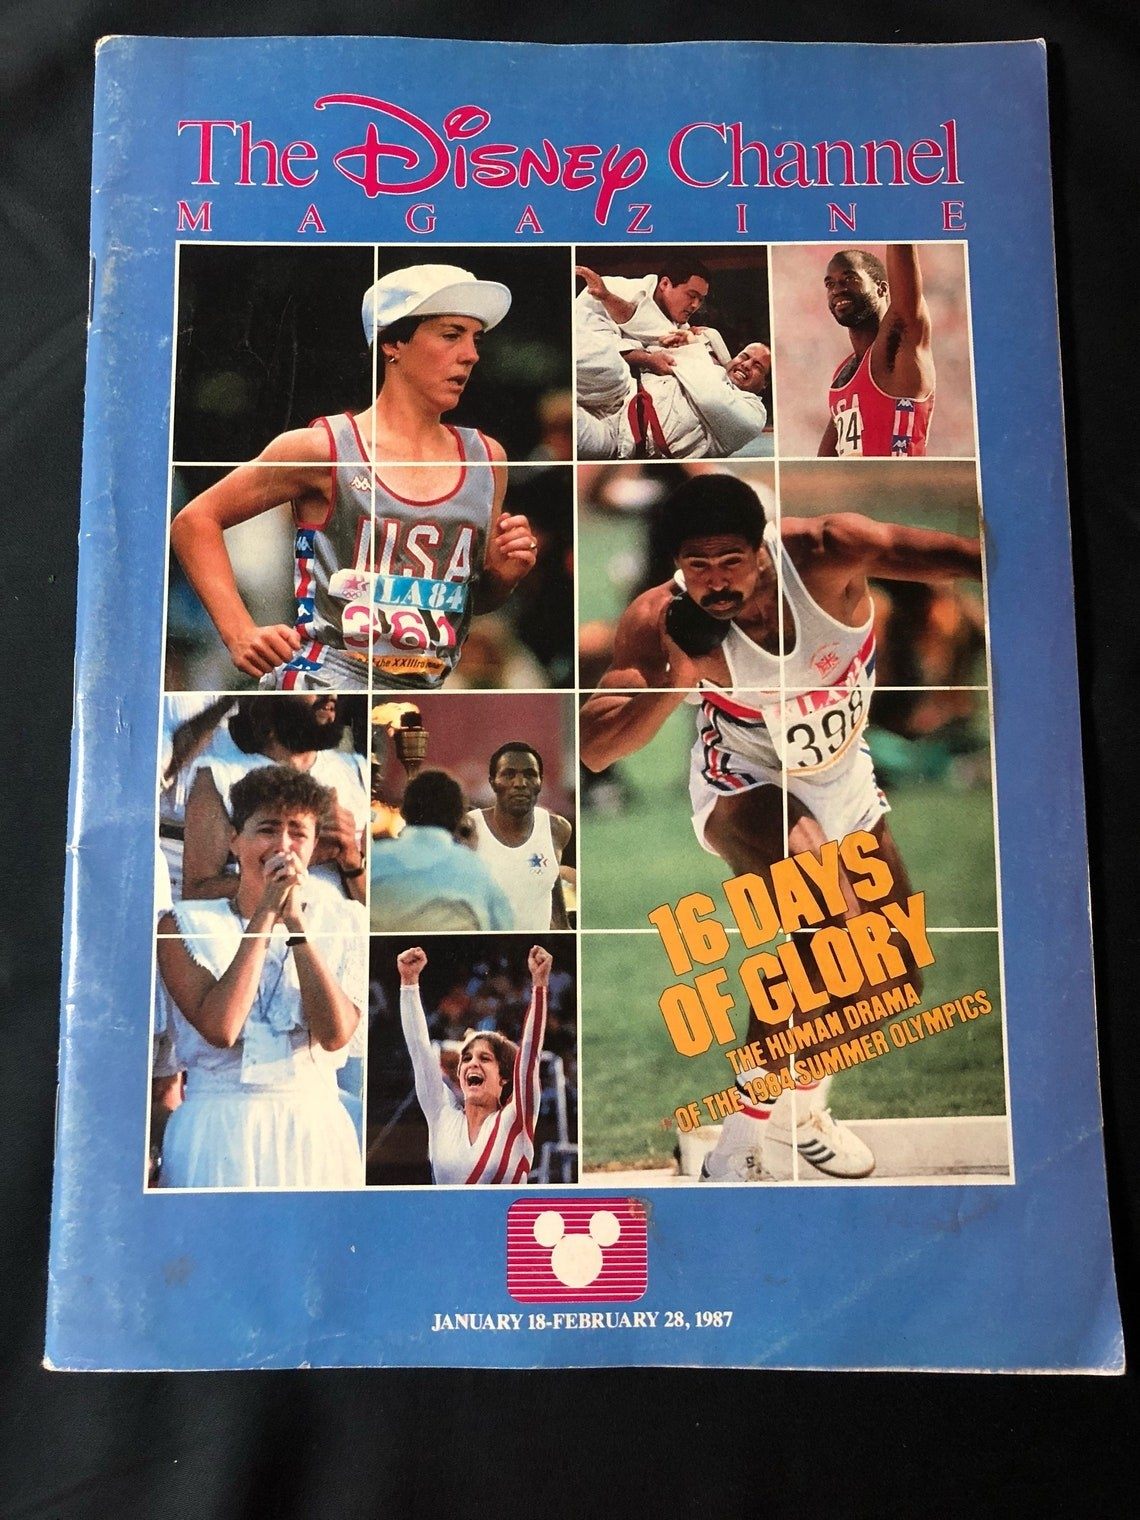 Disney Channel magazine featuring photos from the 1984 Olympics